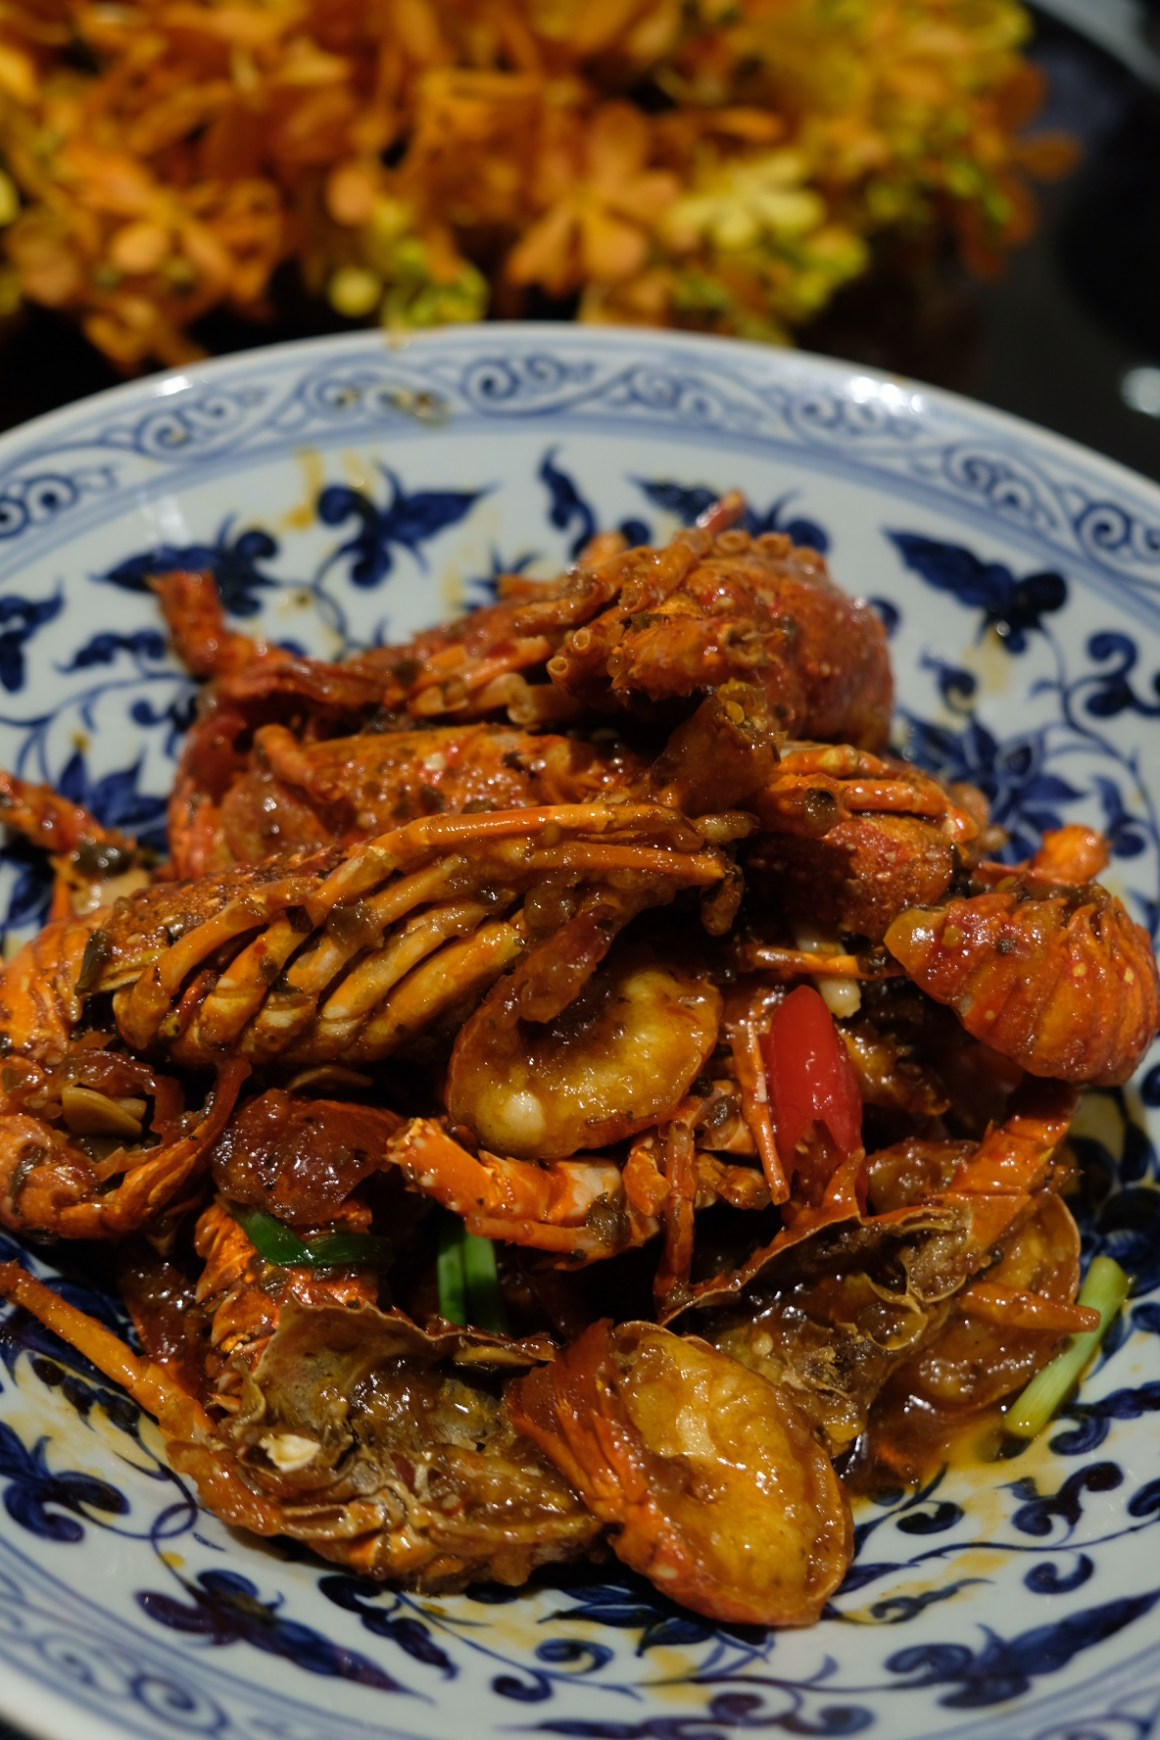 A Tale of Twin Baby Lobster At Si Chuan Dou Hua Restaurant @ PARKROYAL on Beach Road - Stir-fried Baby Lobster in Sichuan Style